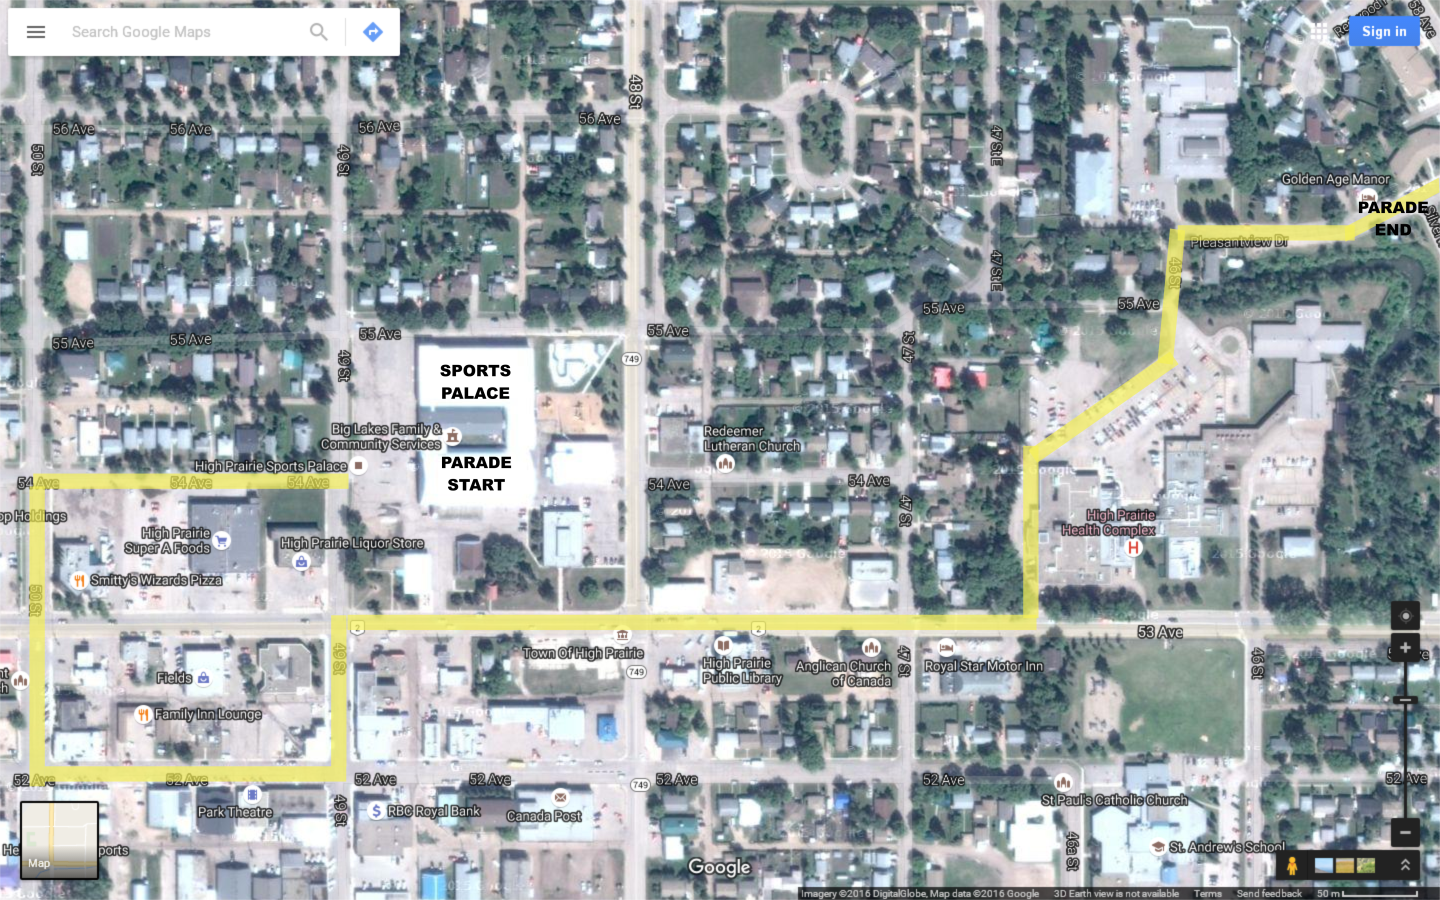 Parade Route_2016_PNG